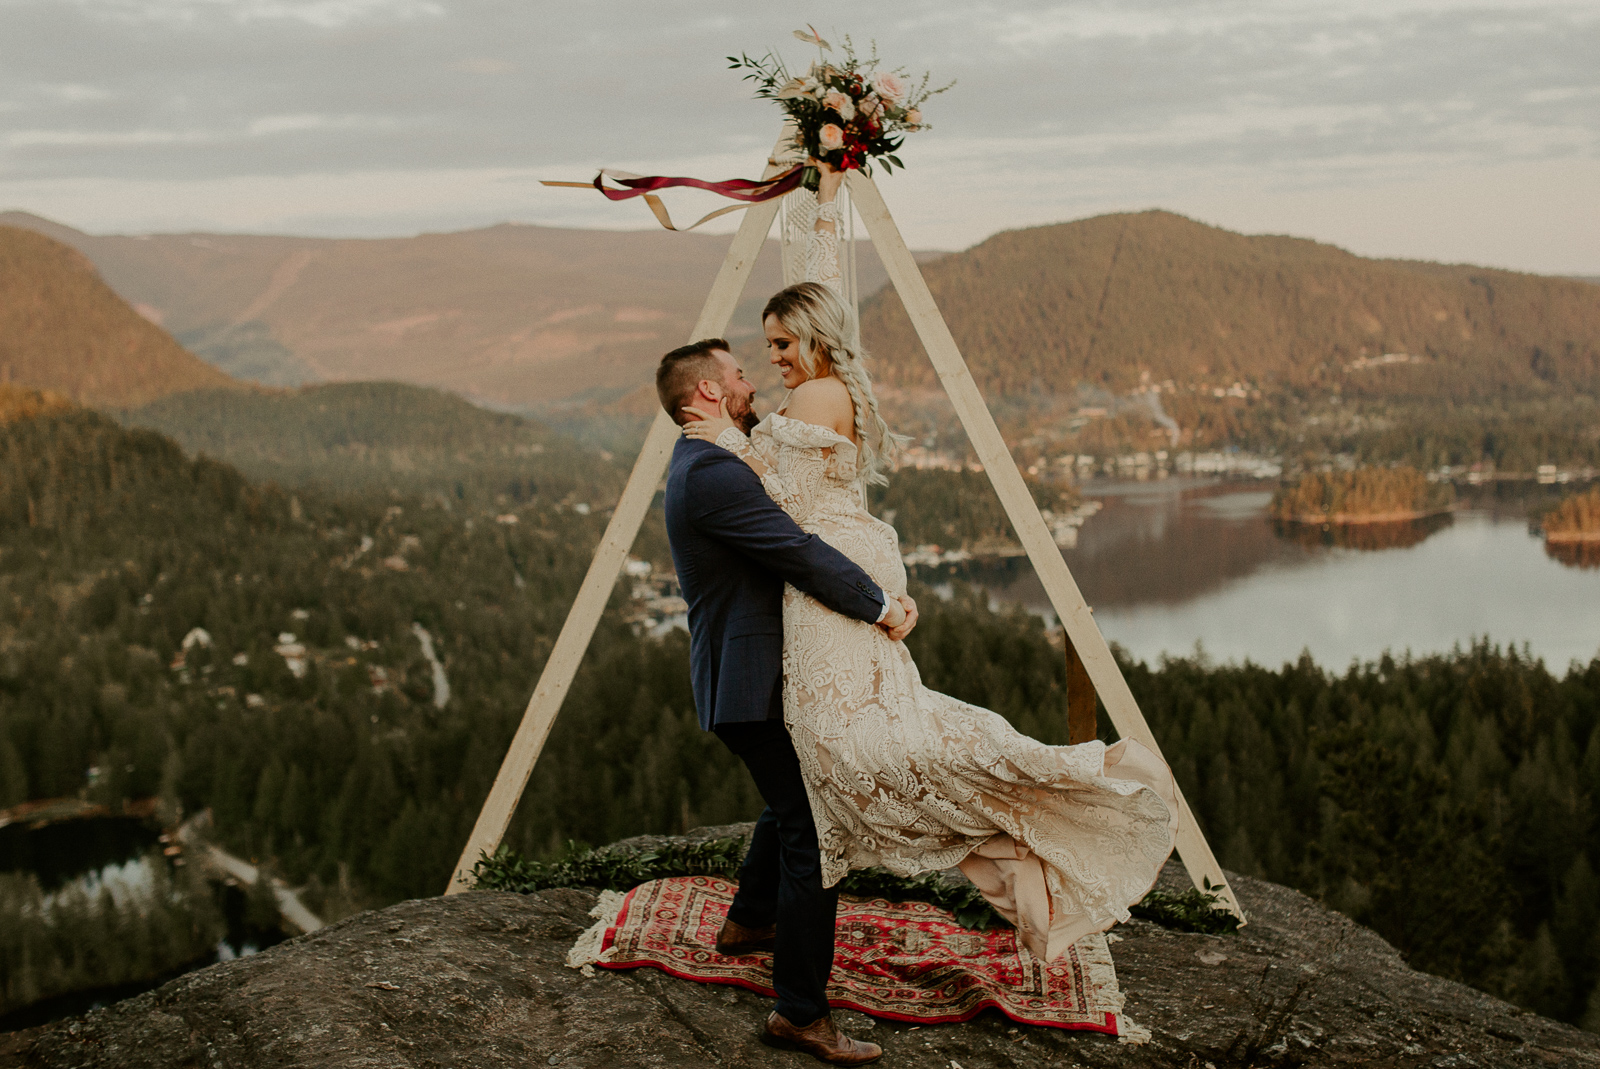 Luke Lambertson Photo_BritishColumbia_Canada_AdventurousCouple_Elopement_IMG-8534-2.jpg